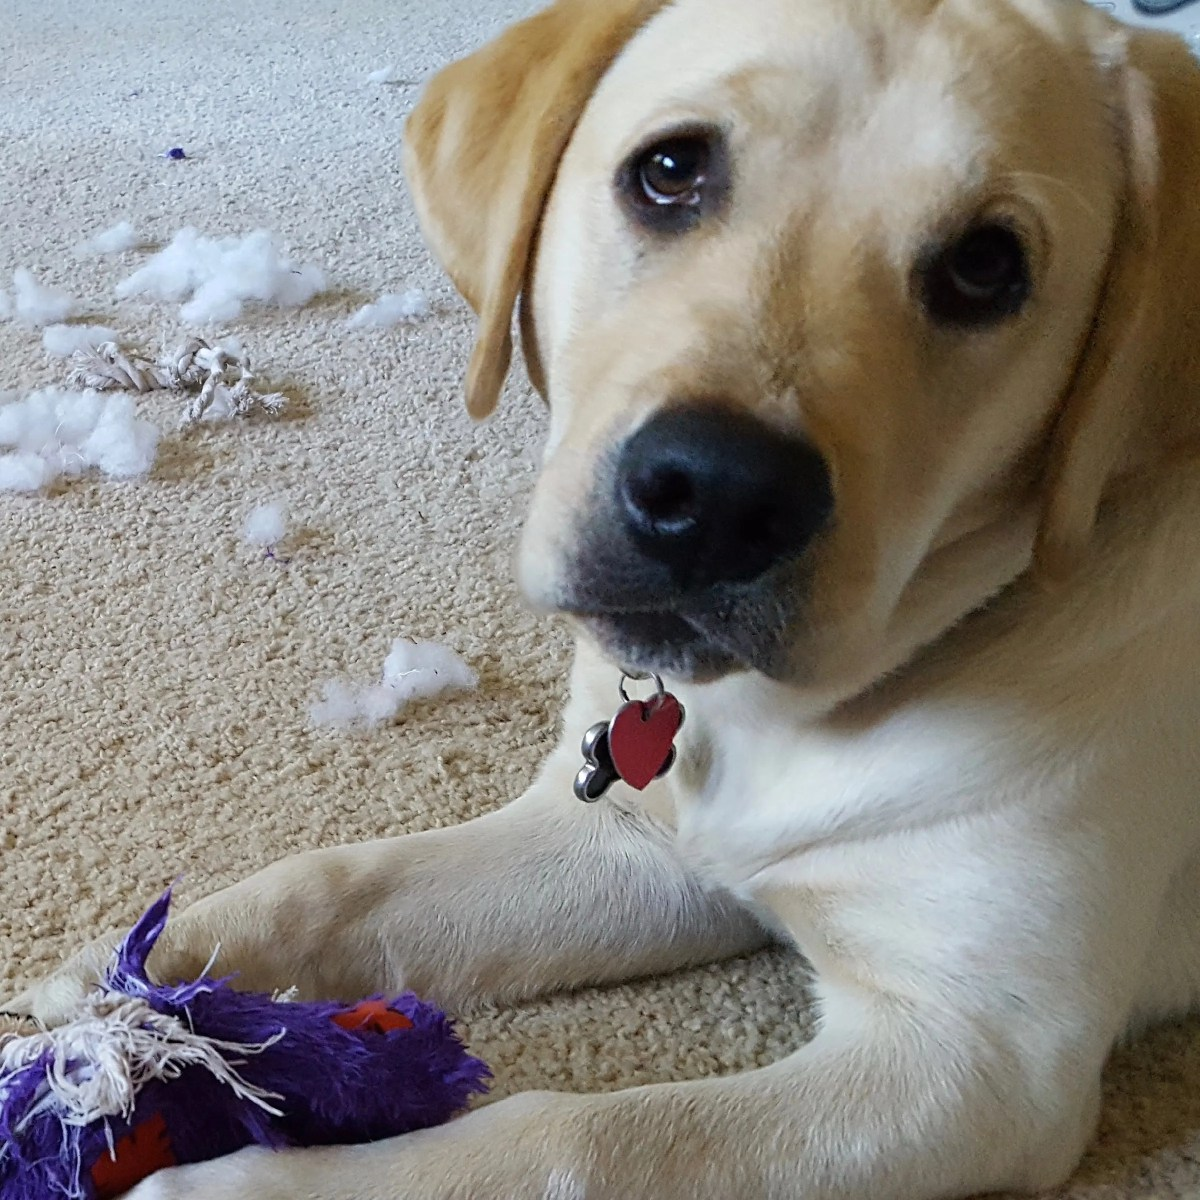 Gilly and her new toy (and its remains)